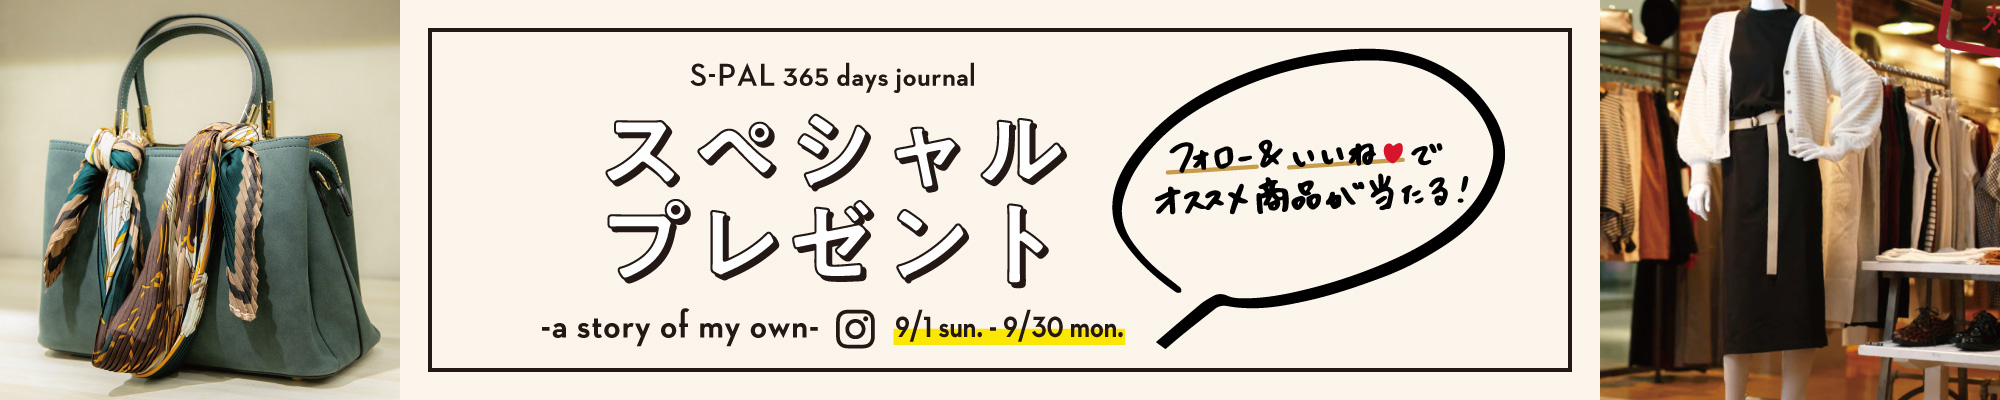 S-PAL 365 days journal